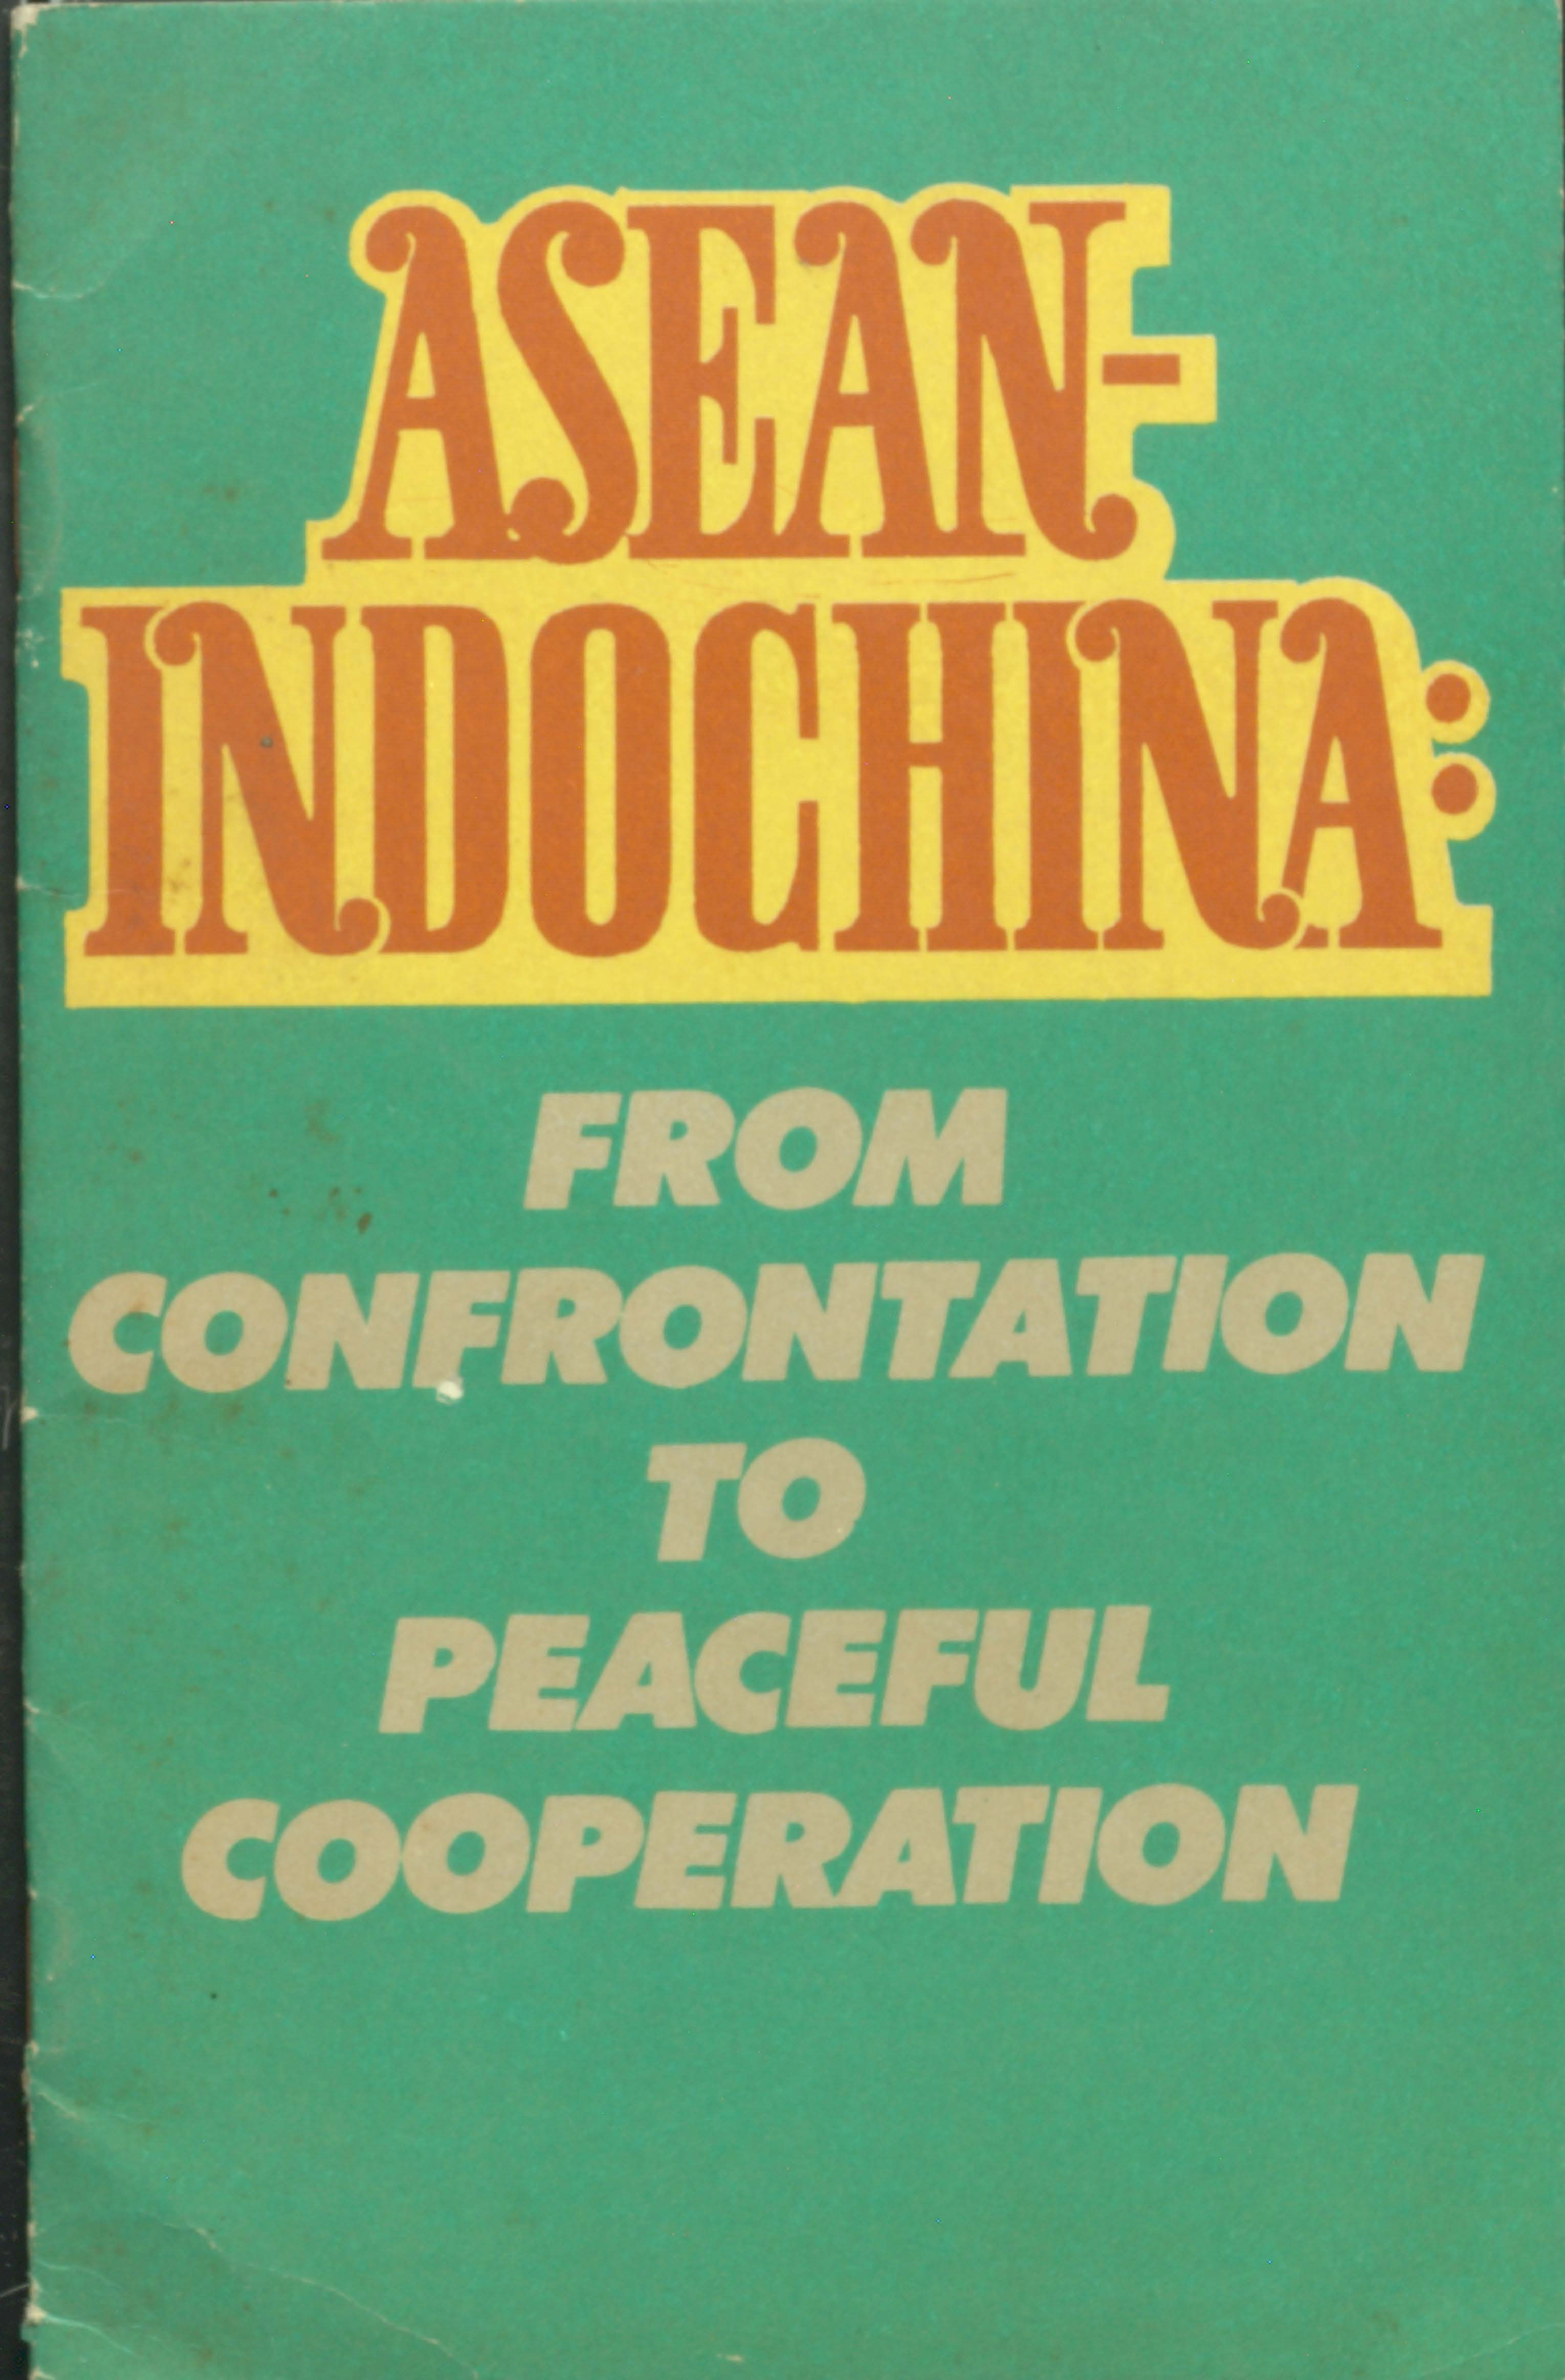 Asean Indochina from congrontation to peaceful cooperation